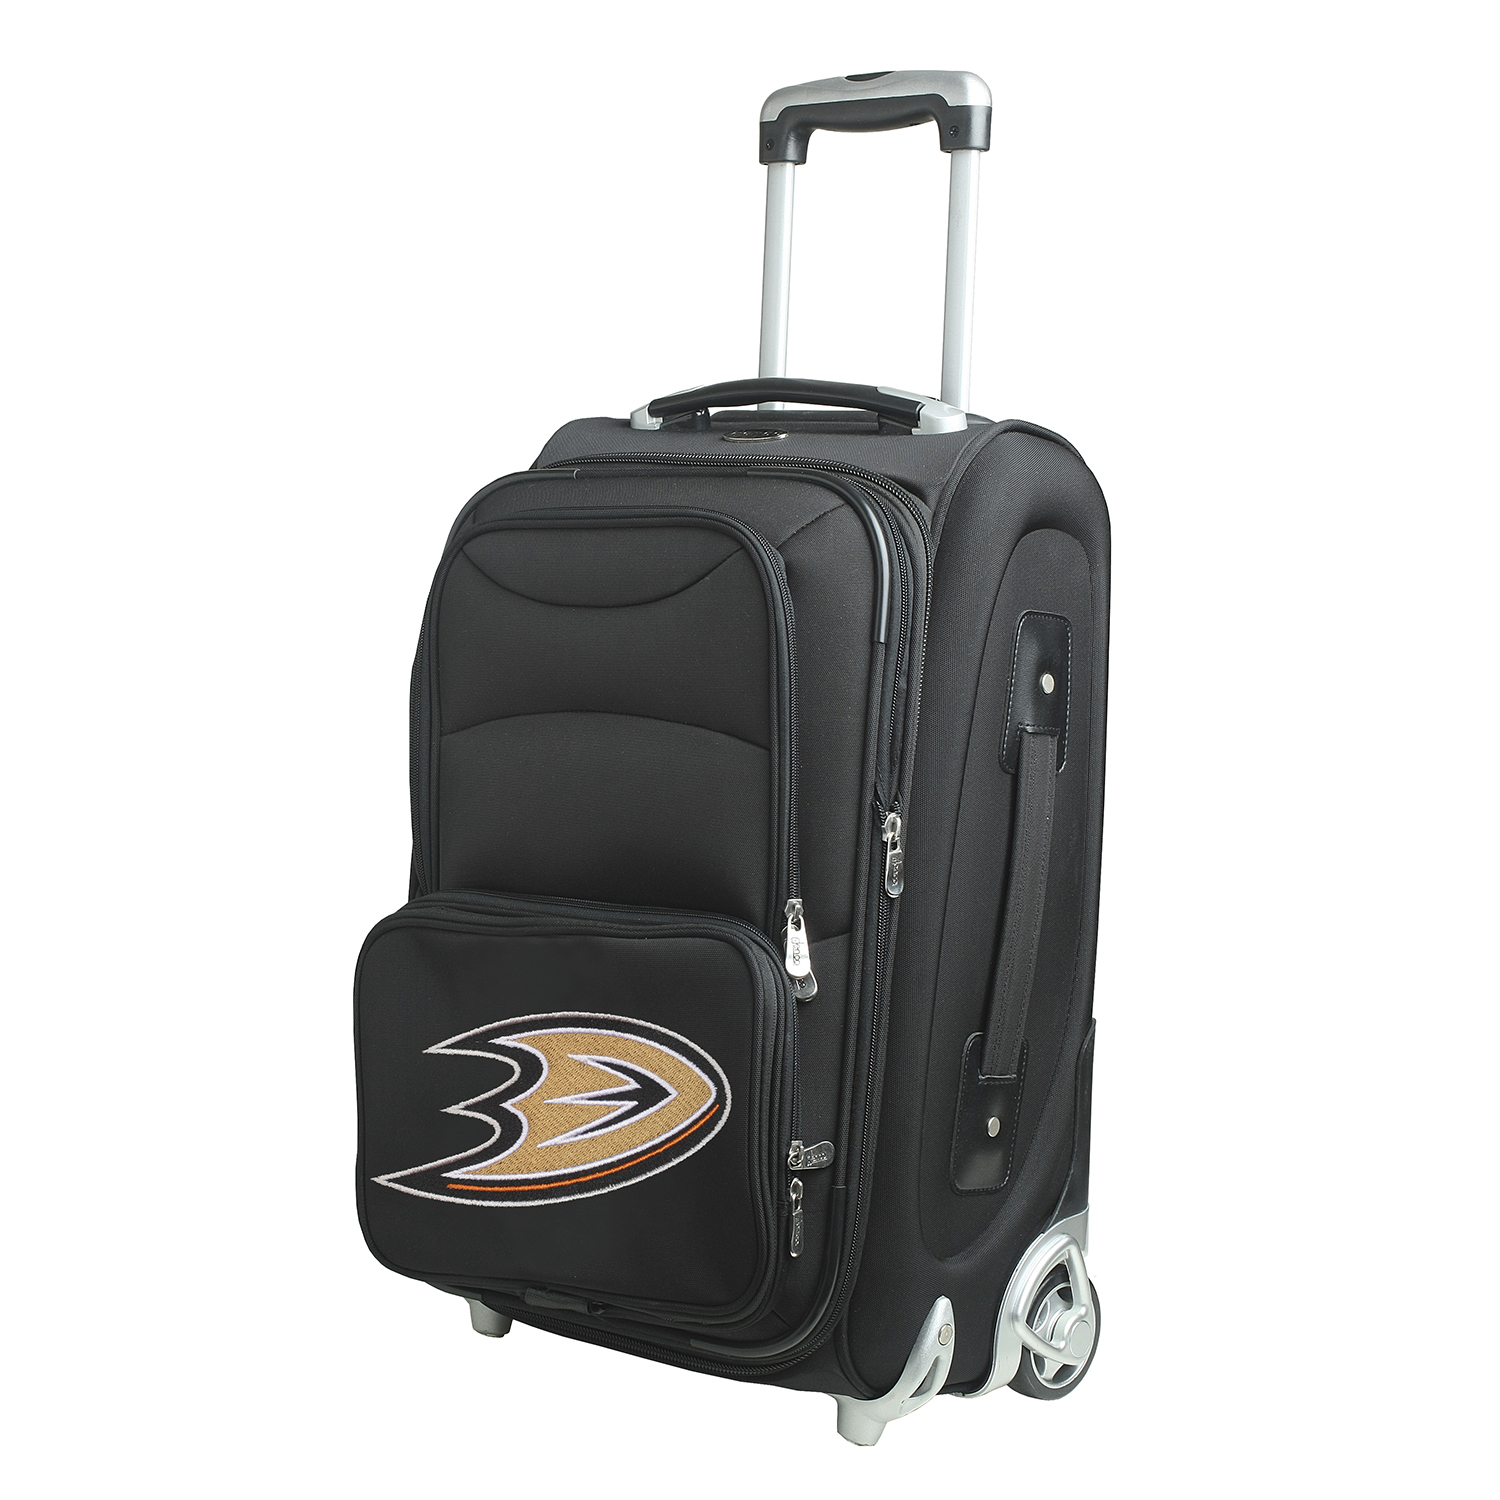 NHL Anaheim Mighty Ducks Luggage Carry-On 21In Rolling Softside Nylon